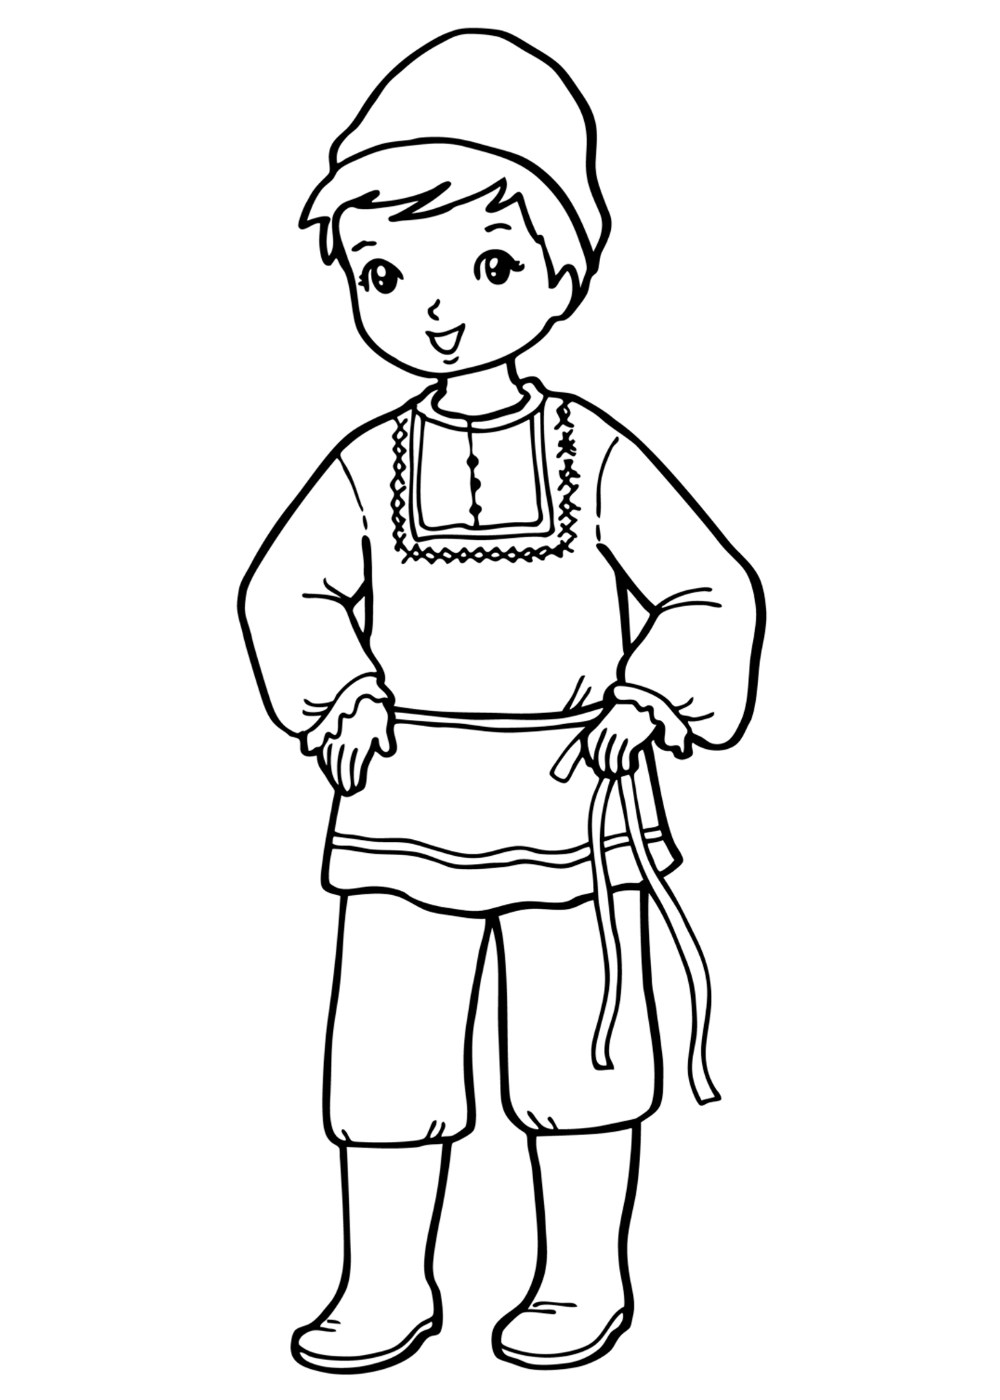 colouring page of a boy free printable coloring pages for boys a boy of colouring page